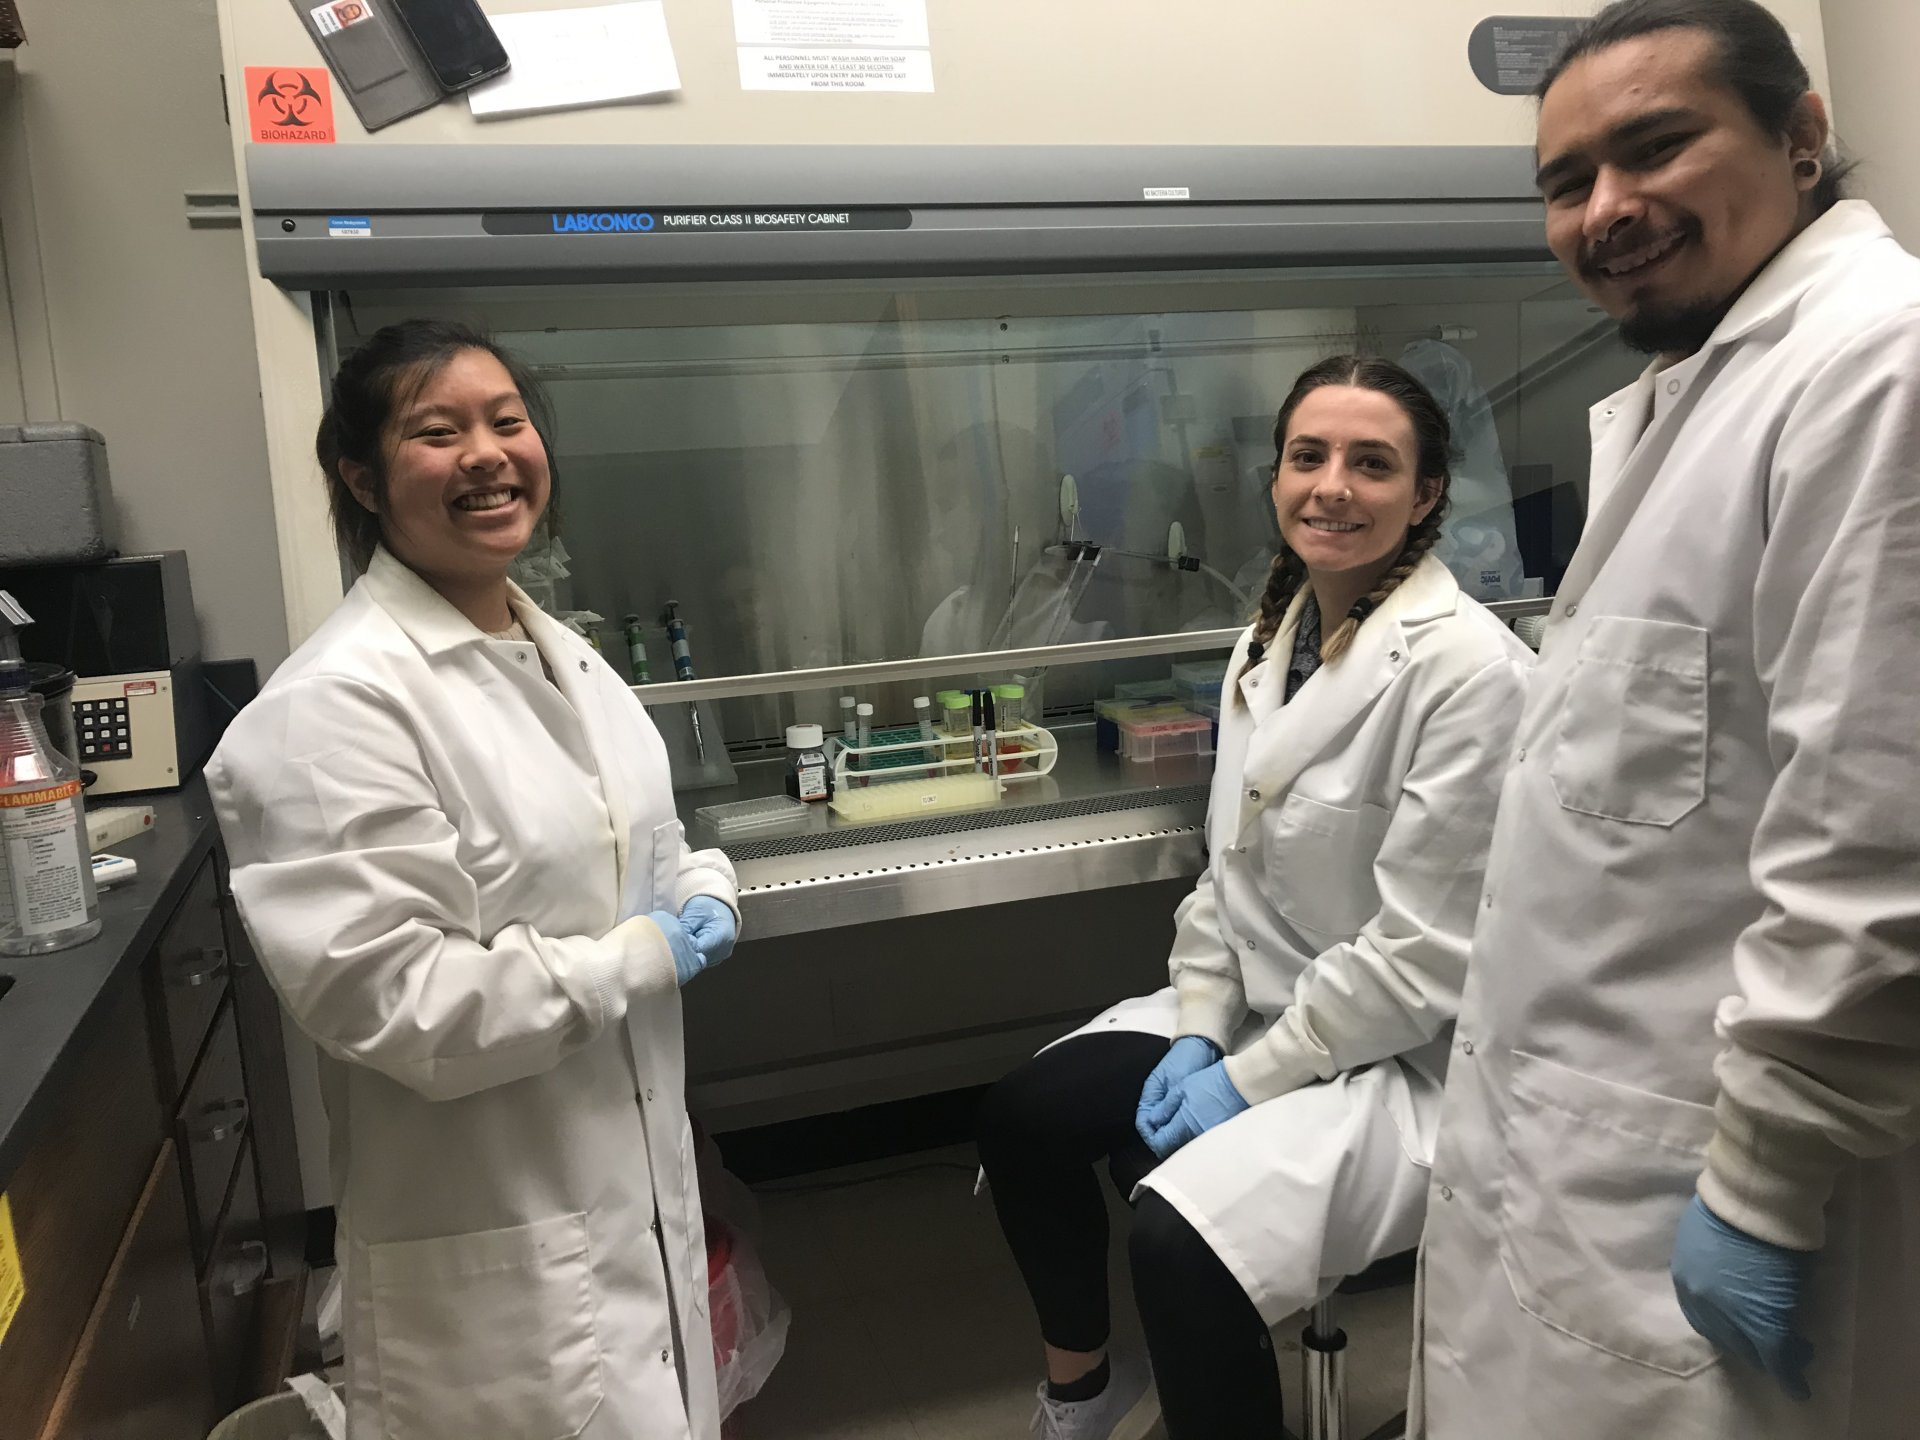 Lisa Ko, Jackie Rose and James Gomez research cellular autophagy in the cell culture lab. The lab is bio safety two, meaning the students need to wear gloves and lab coats to avoid contaminating their science. | Photo by Collin Slavey